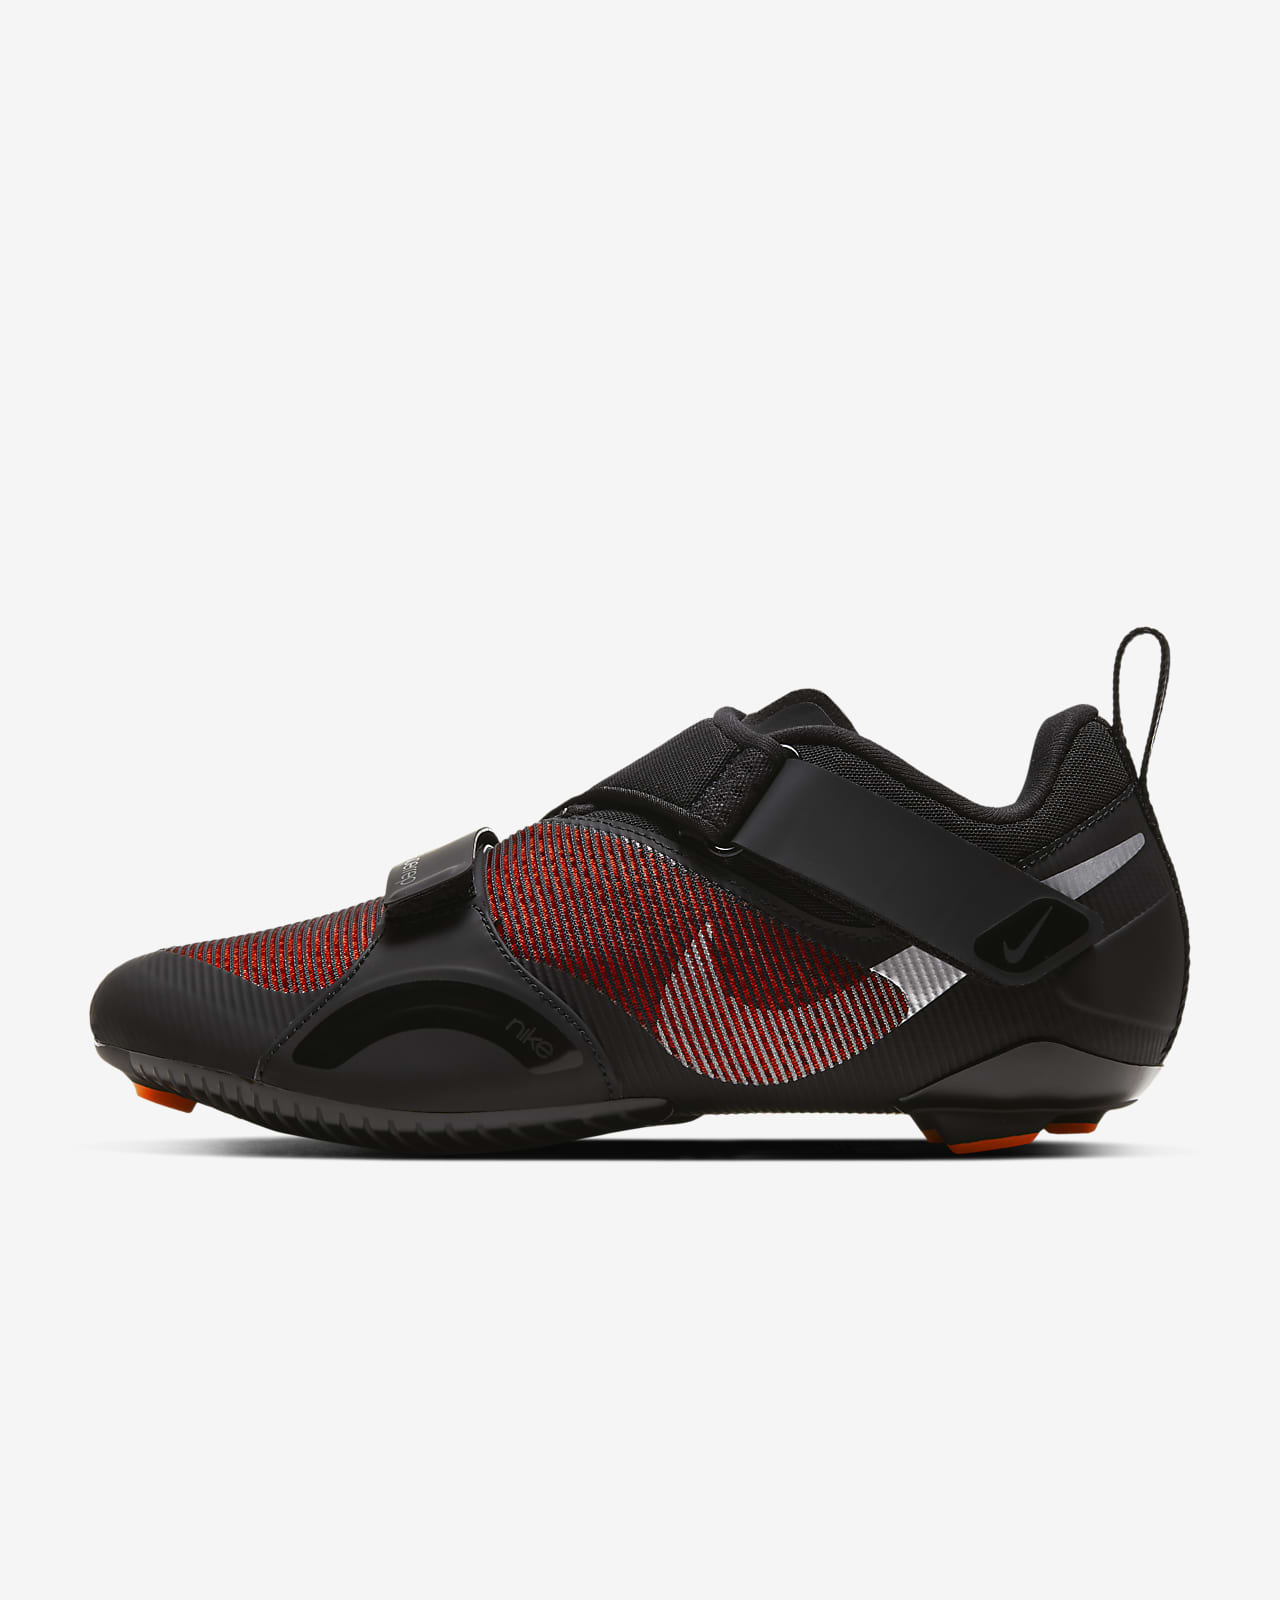 Buen sentimiento fluido Provisional  Nike SuperRep Cycle Women's Indoor Cycling Shoe. Nike LU